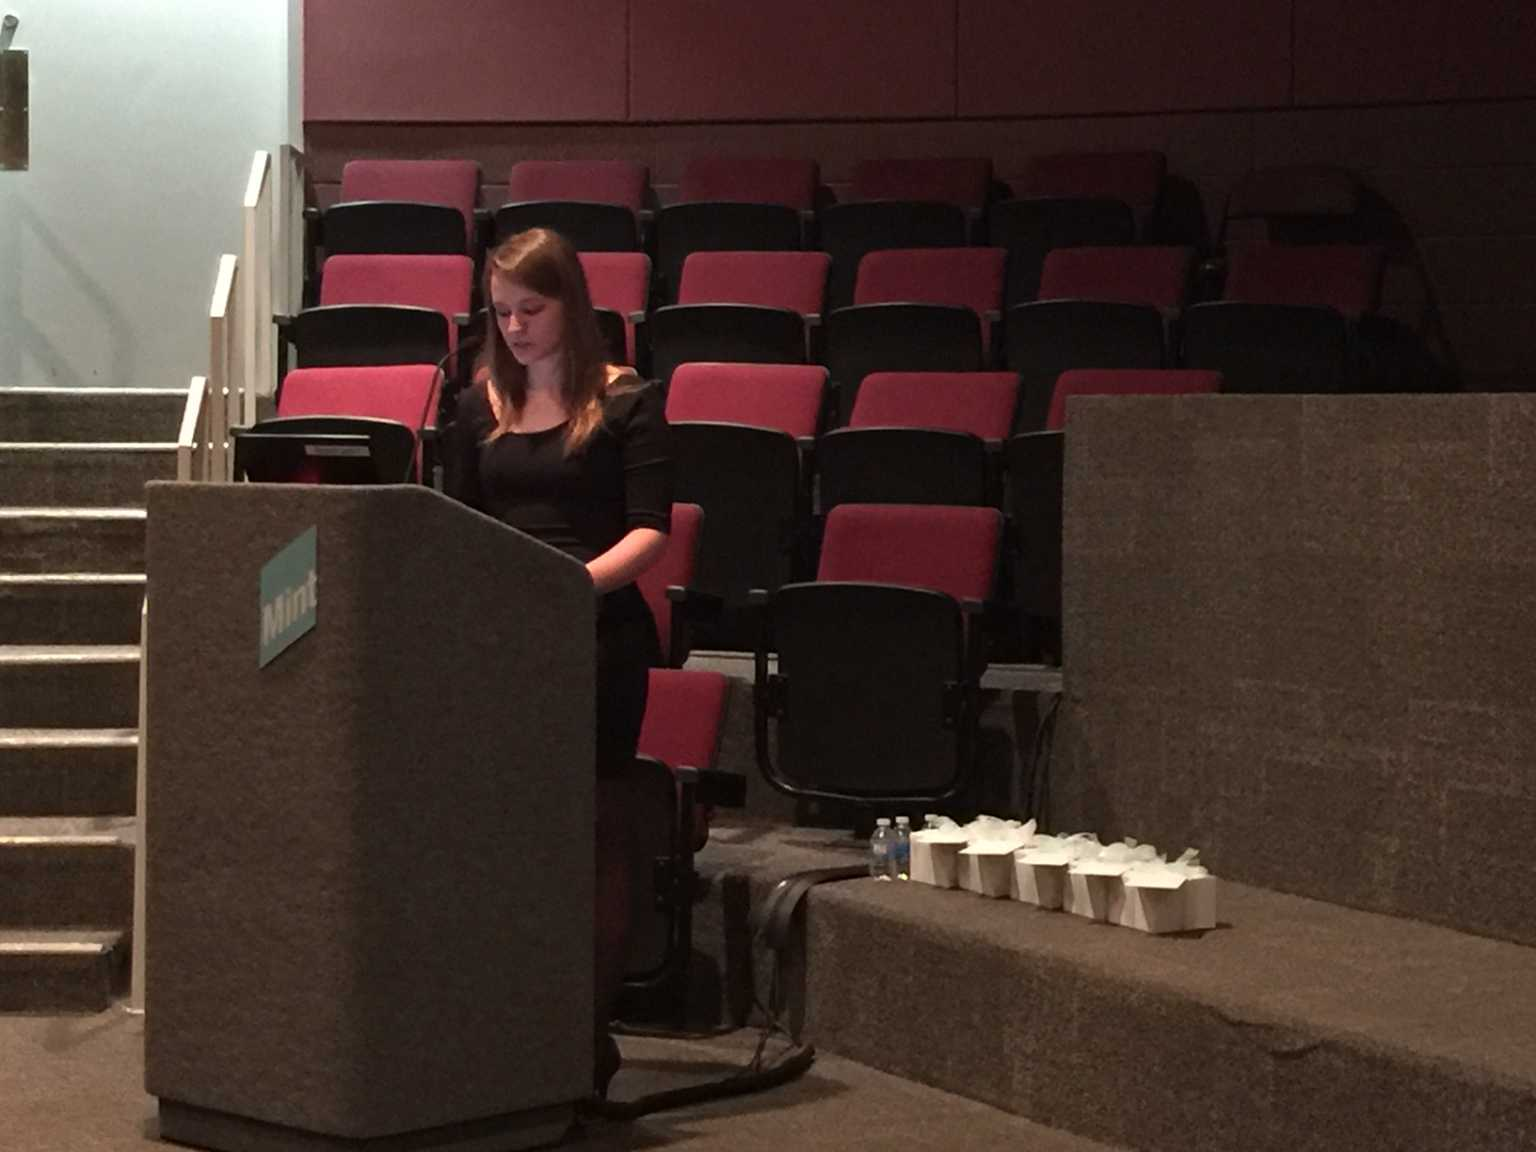 Senior Christine Perry presents her research at the 27th Annual Mint Museum Art History Symposium